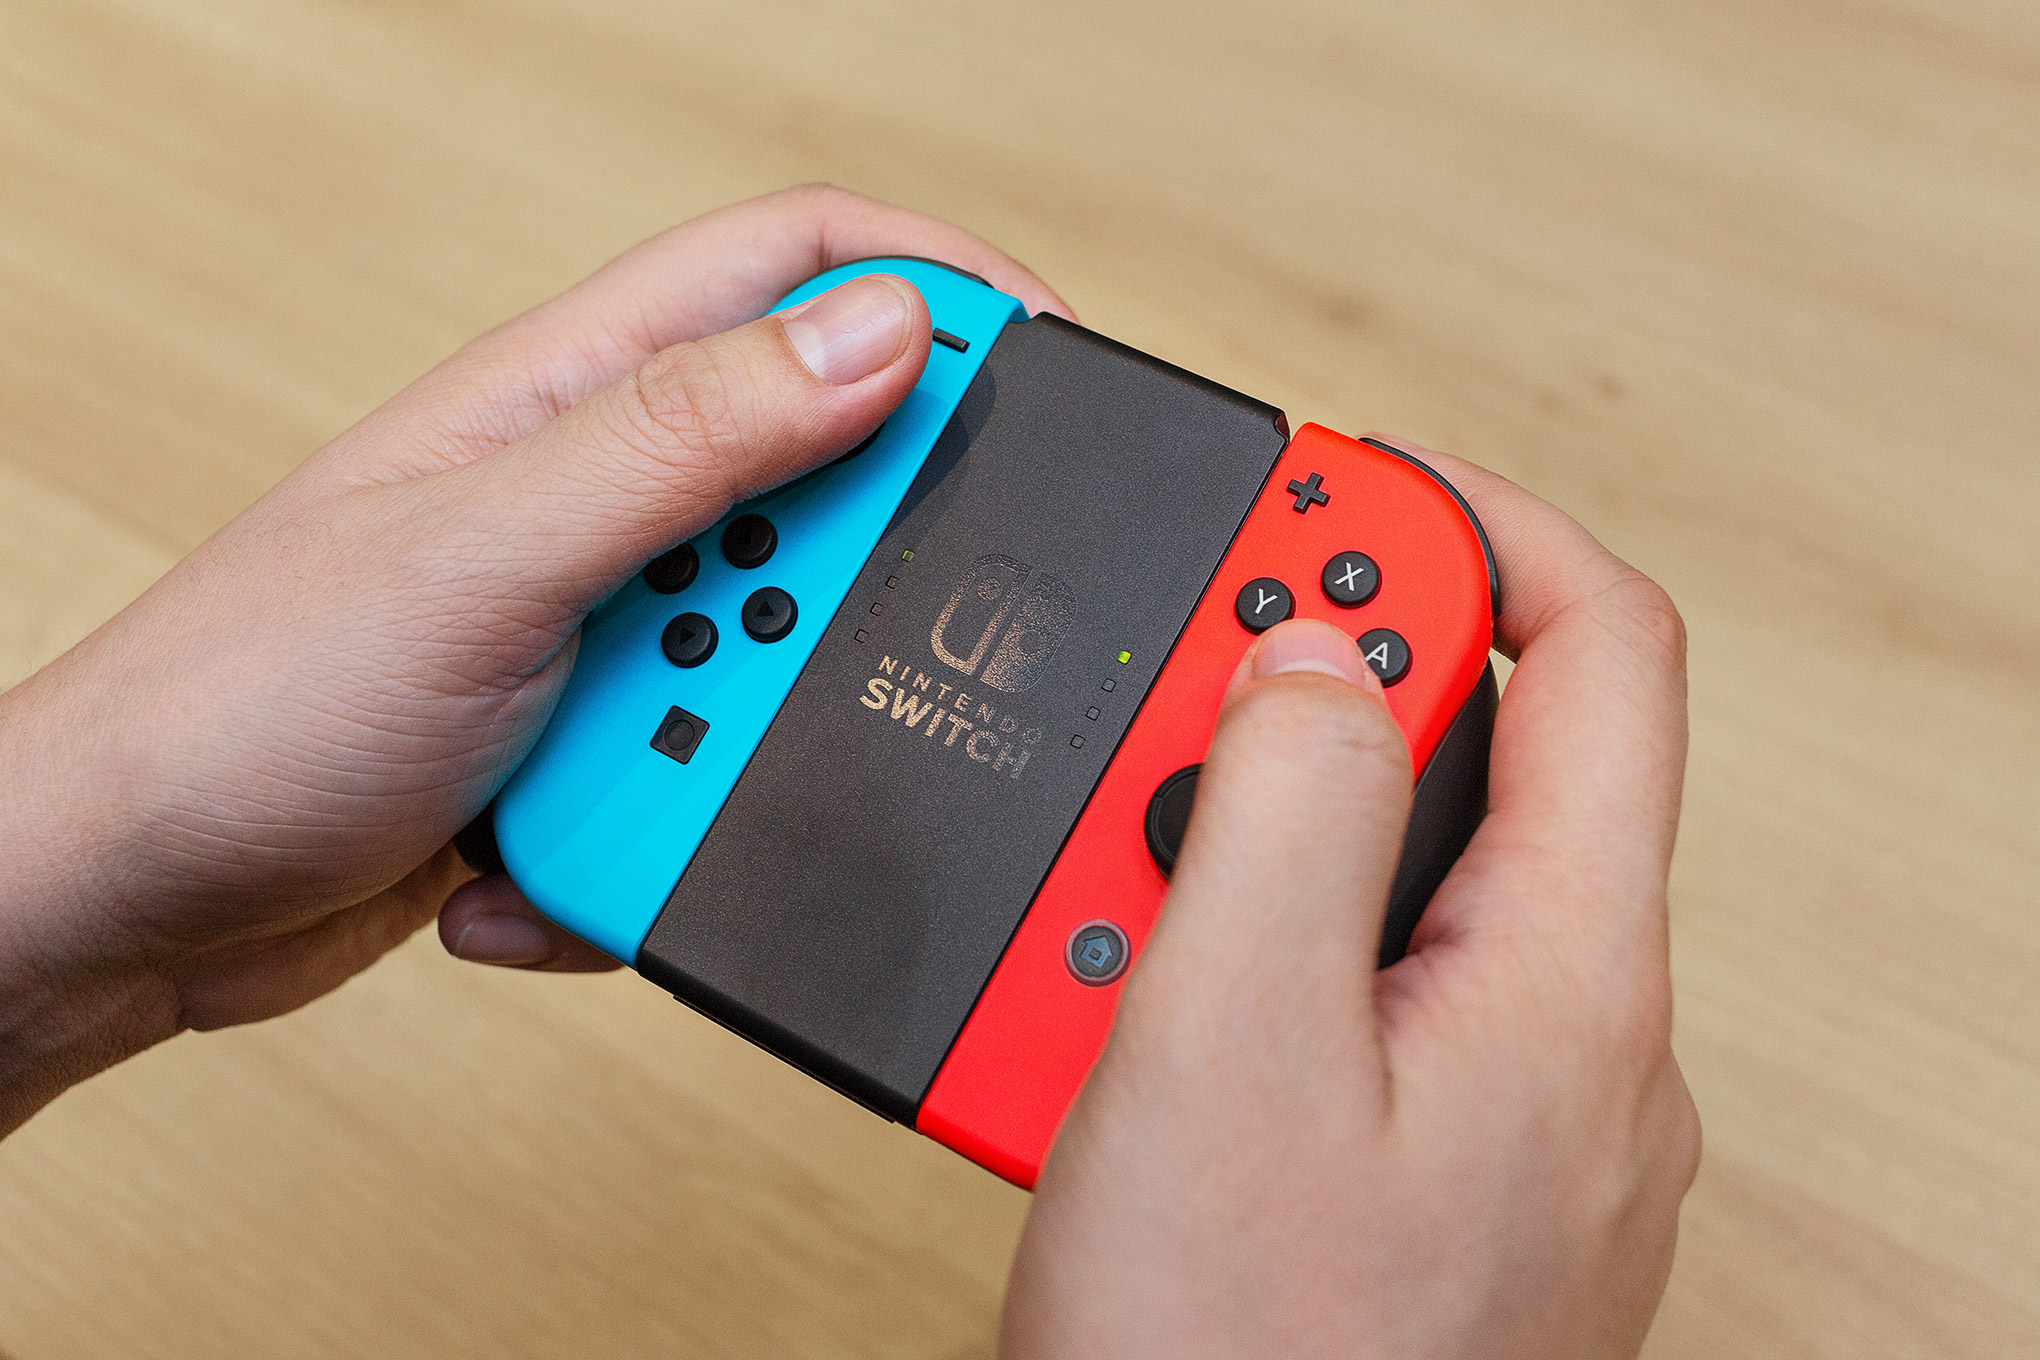 Nintendo boss explains why Switch's online services were delayed